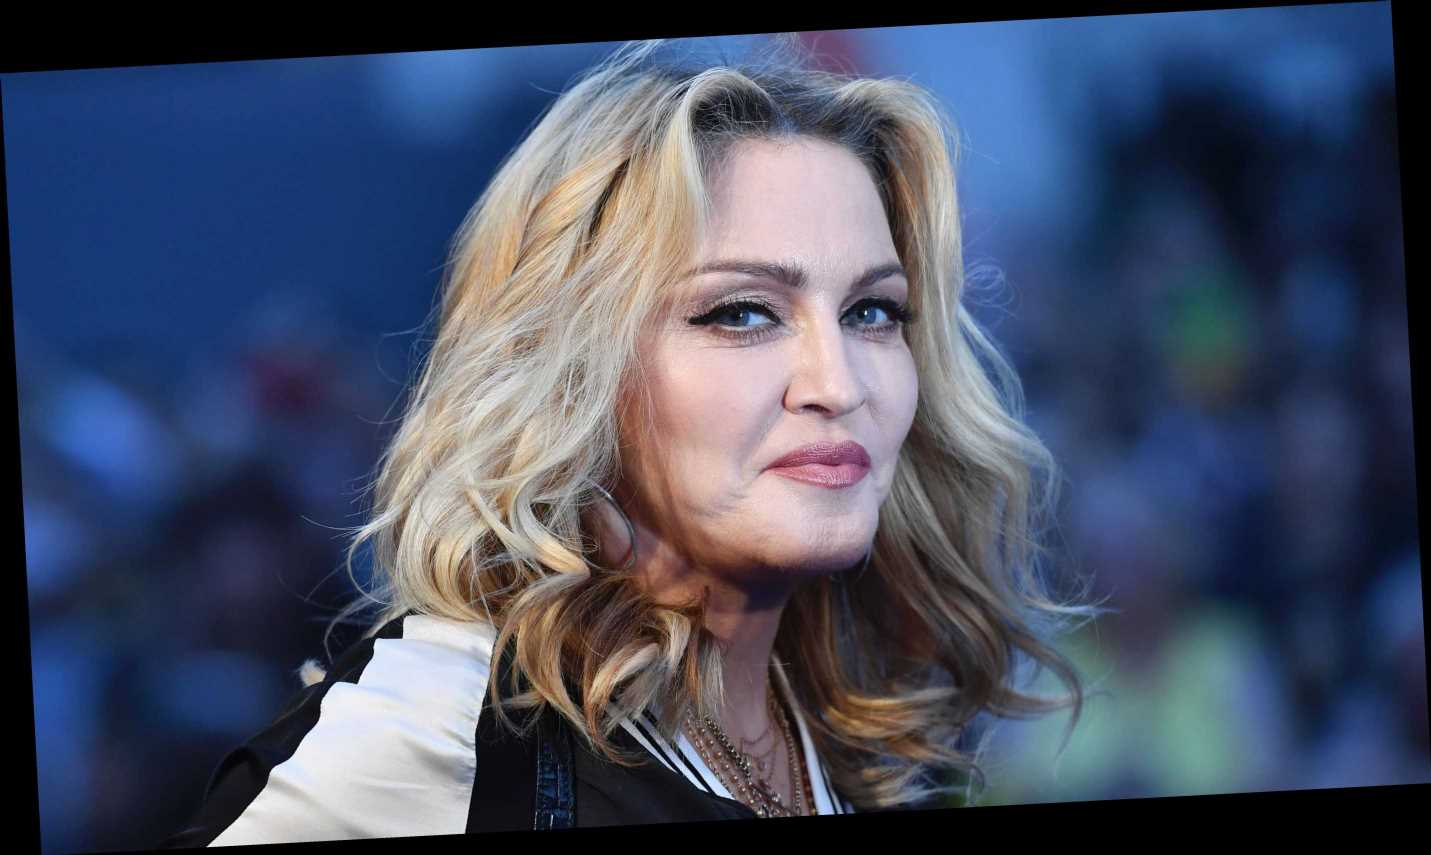 Madonna to direct, co-write biopic about her life